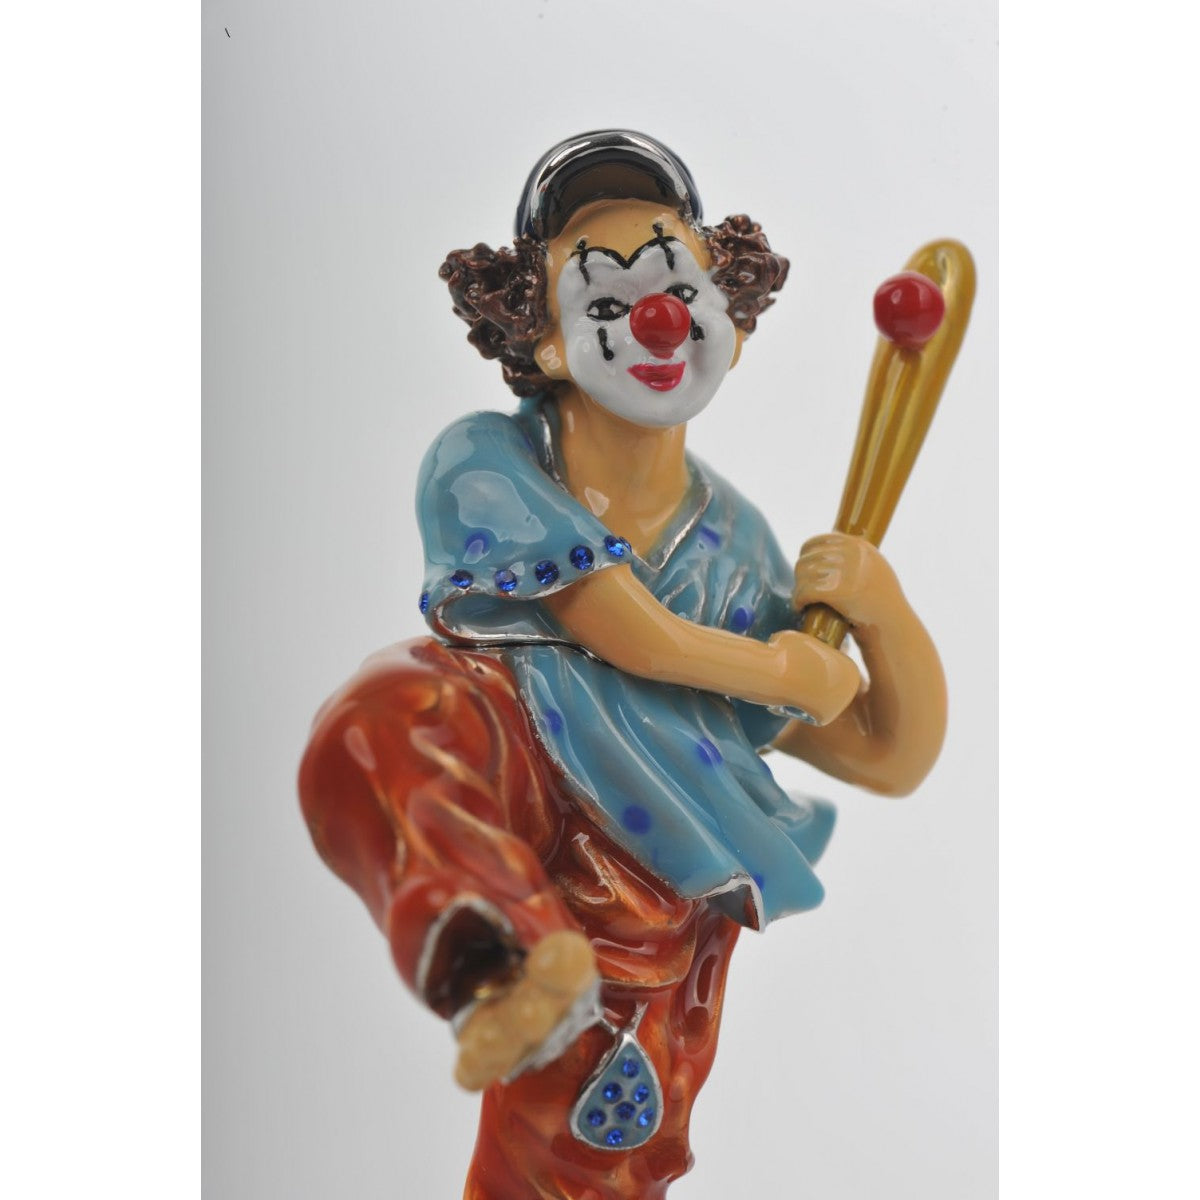 Circus Clown Playing Baseball by Keren Kopal